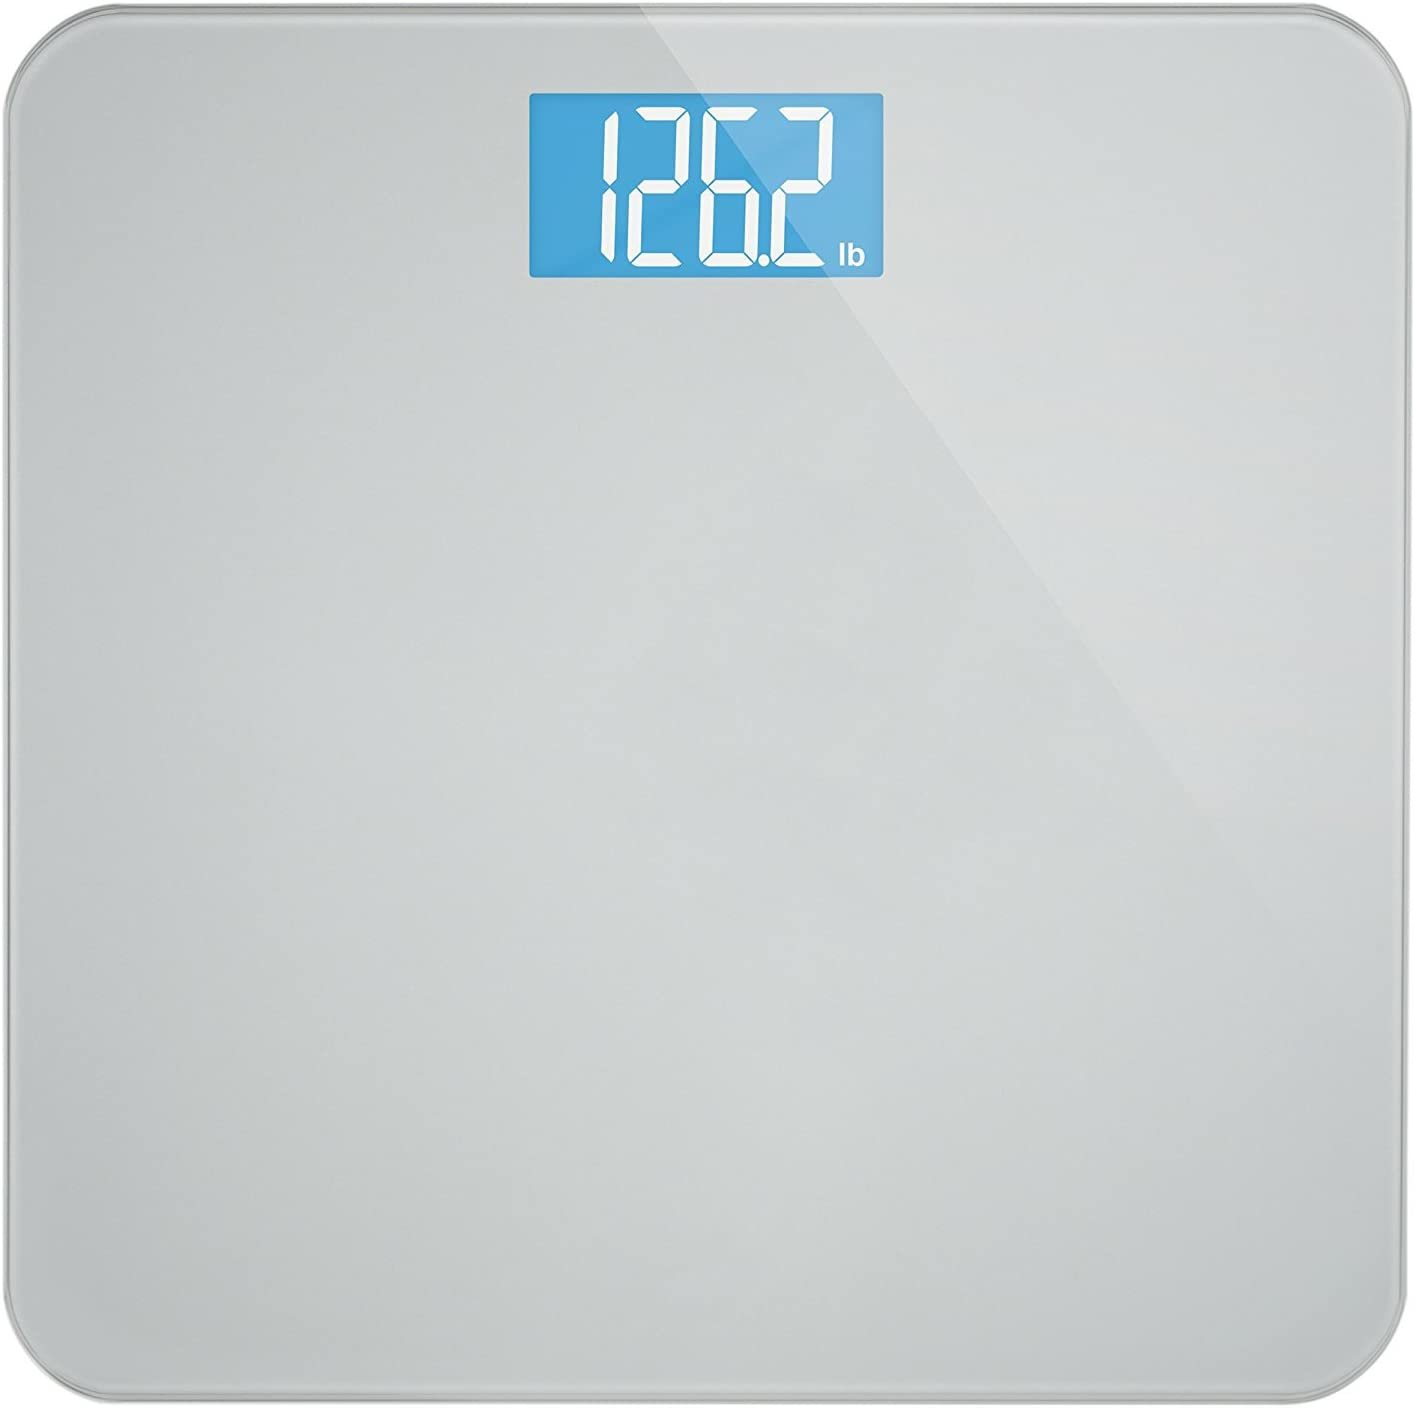 Luxe Weight Modern Digital Bathroom with Easy-to-Read 市販 Back 人気 Scale